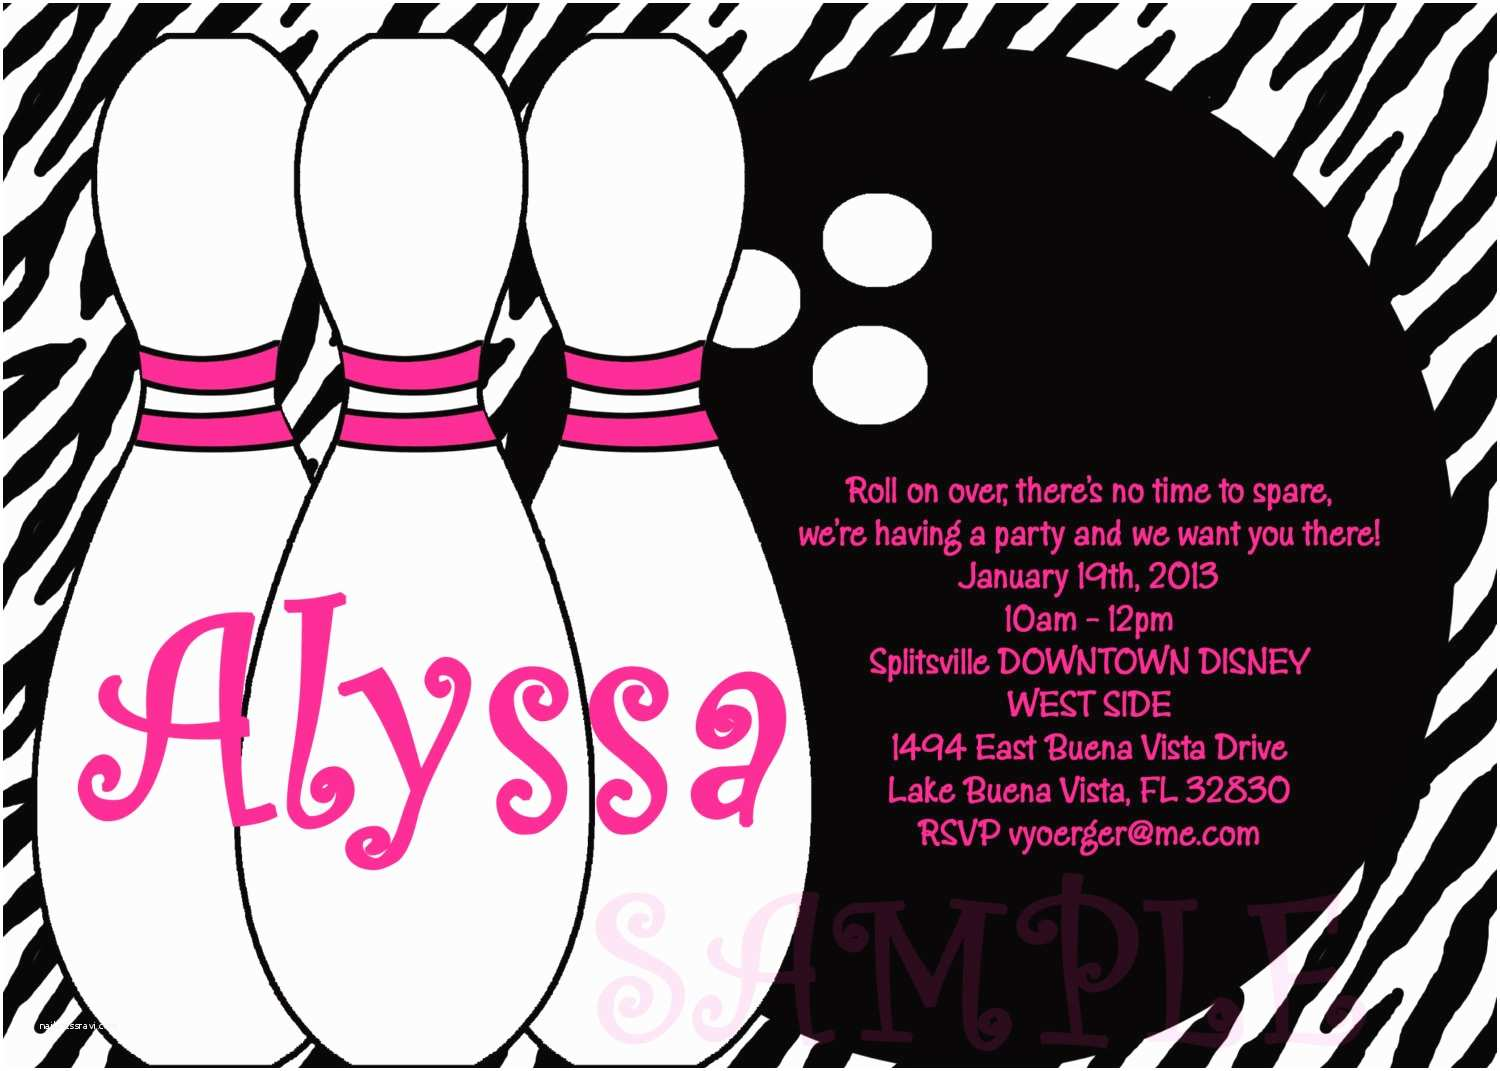 Bowling Party Invitations Bowling Party Invitations Templates Ideas Bowling Party